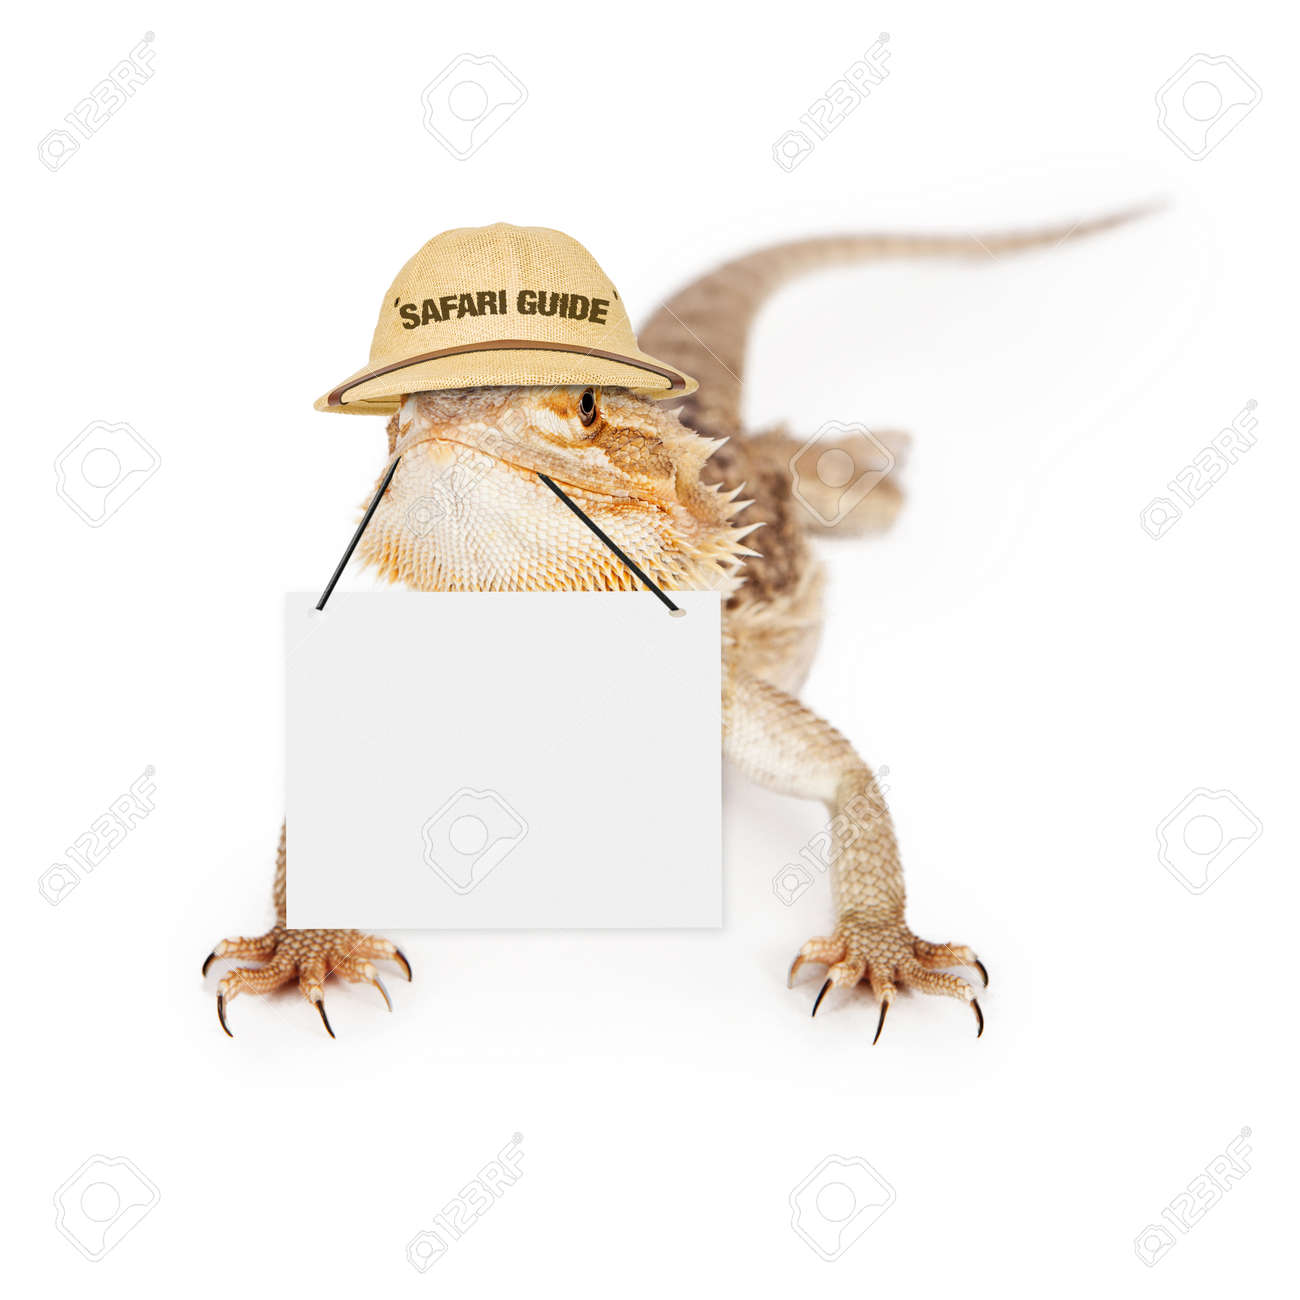 7d8a7cea140 A bearded dragon lizard wearing safari guide hat holding blank sign to  enter marketing message Stock